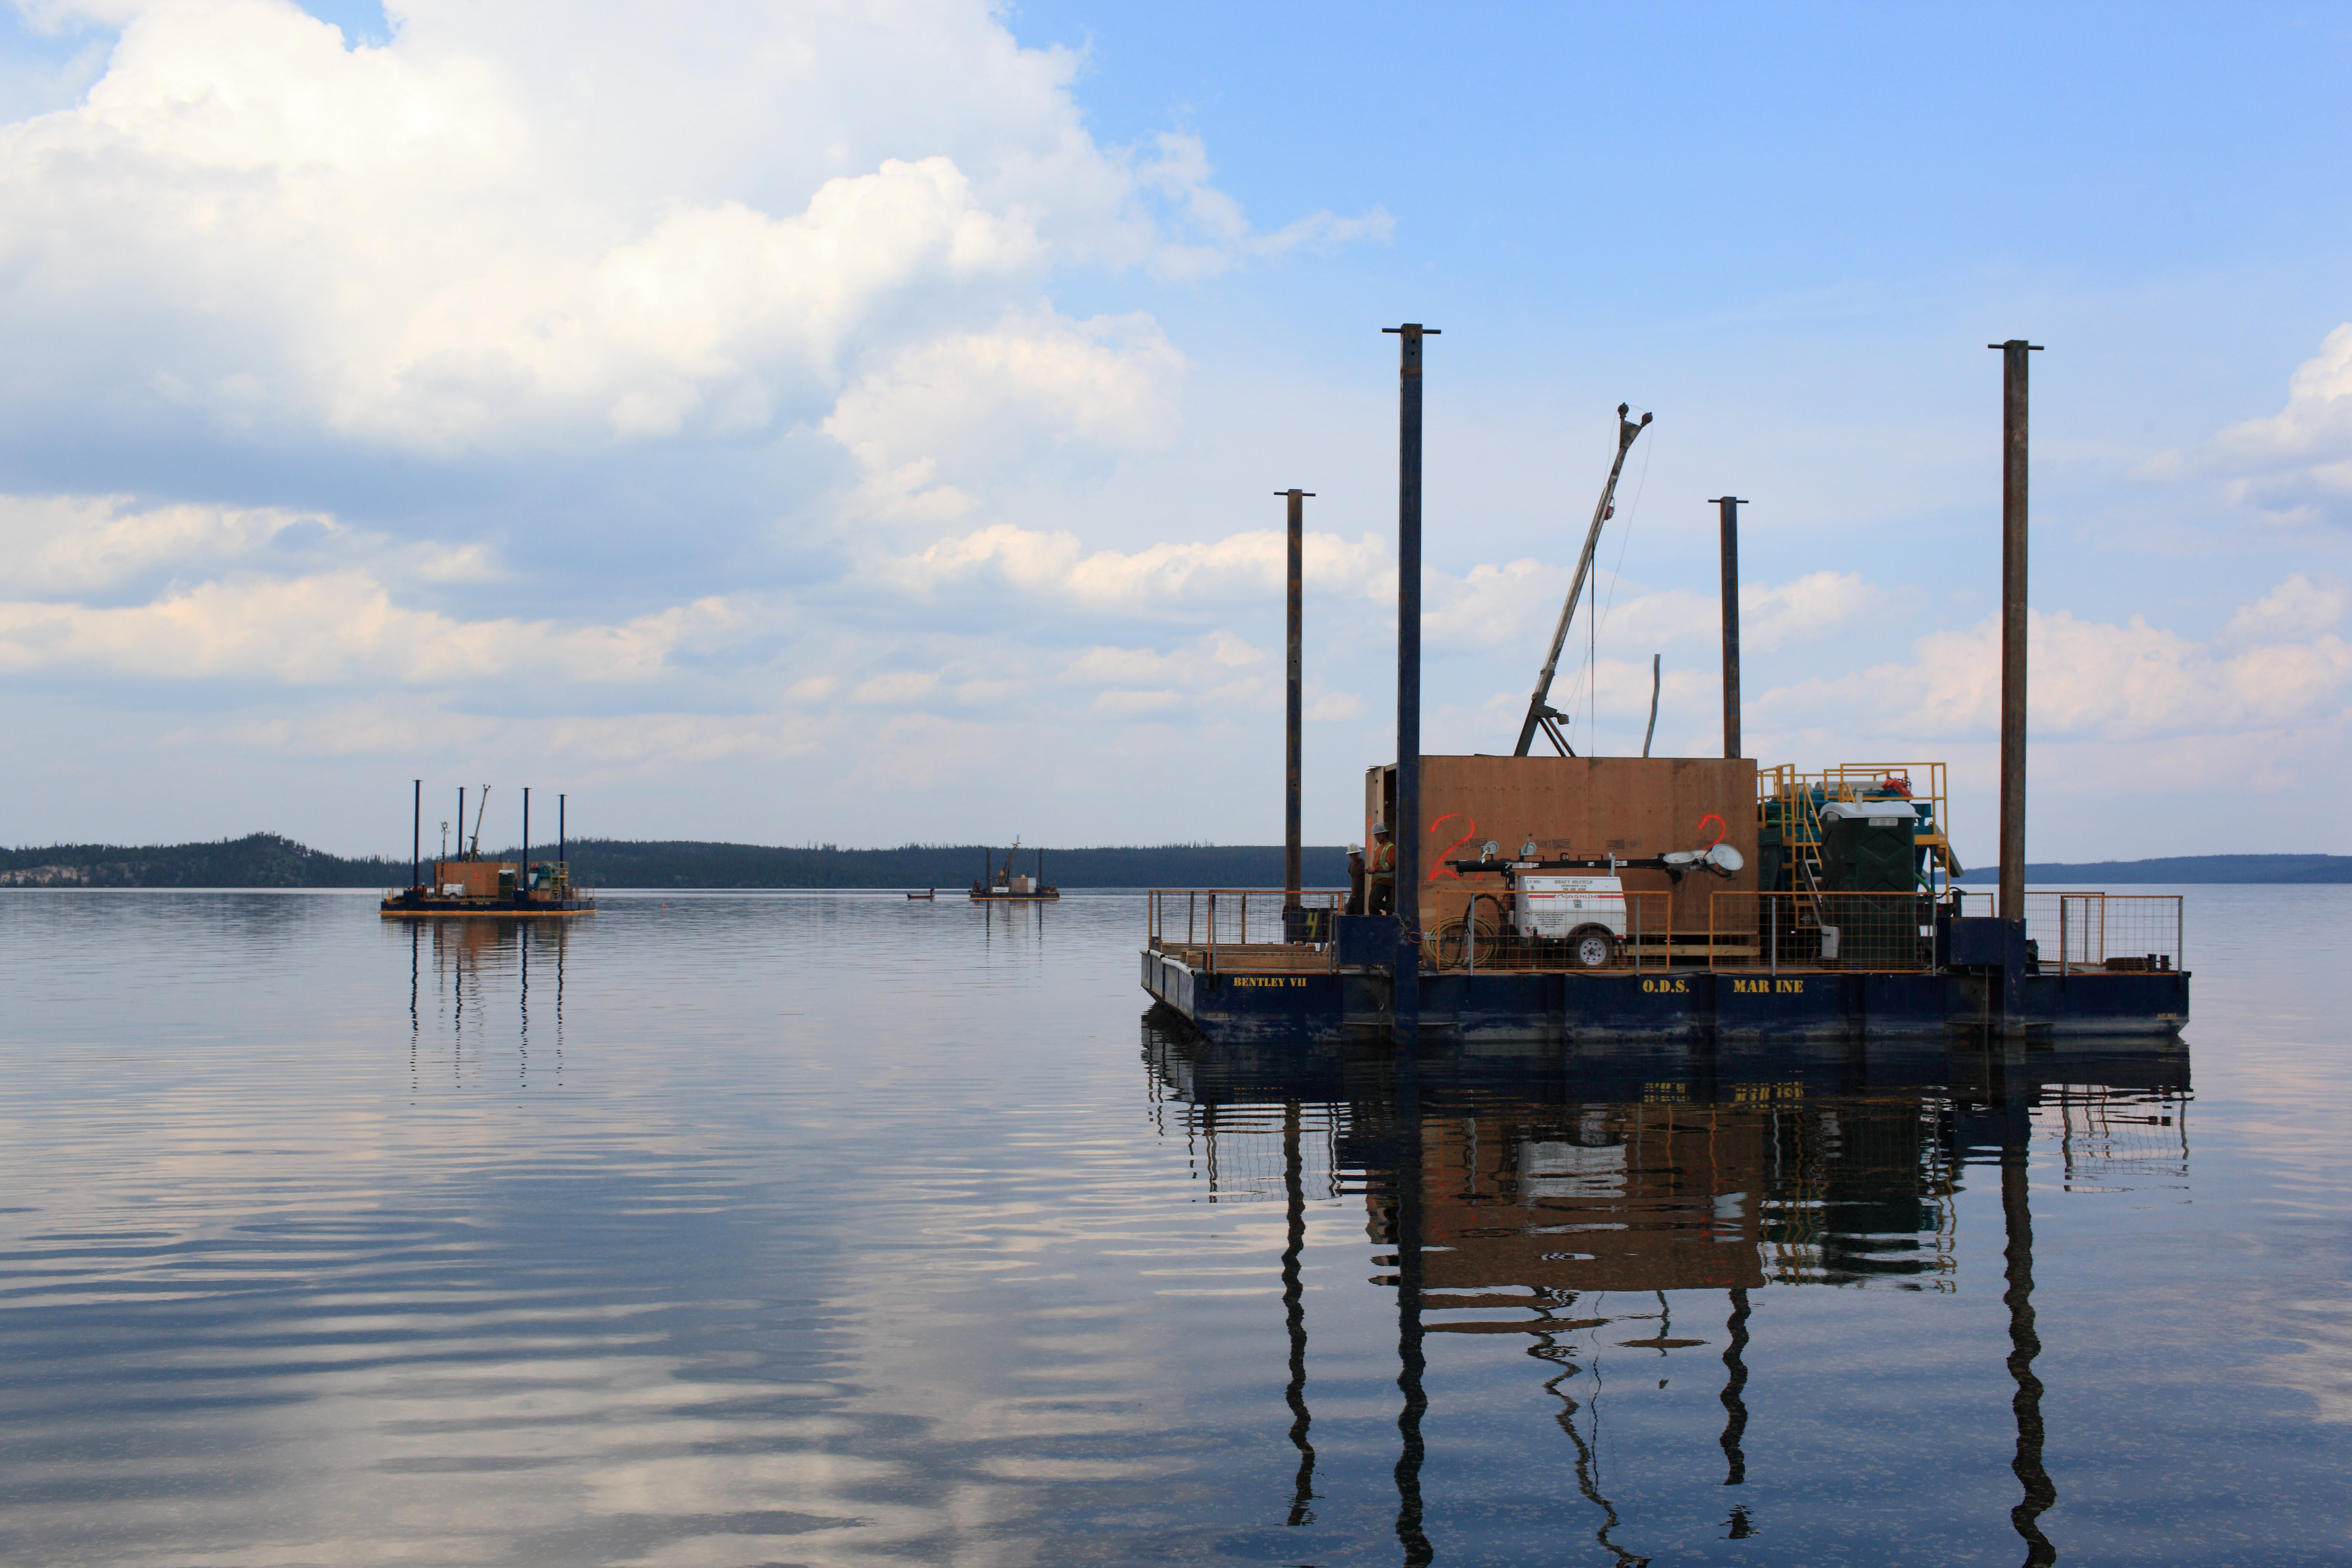 5b - 20140701_PLS_Start_of_Barge_Drilling_lowres